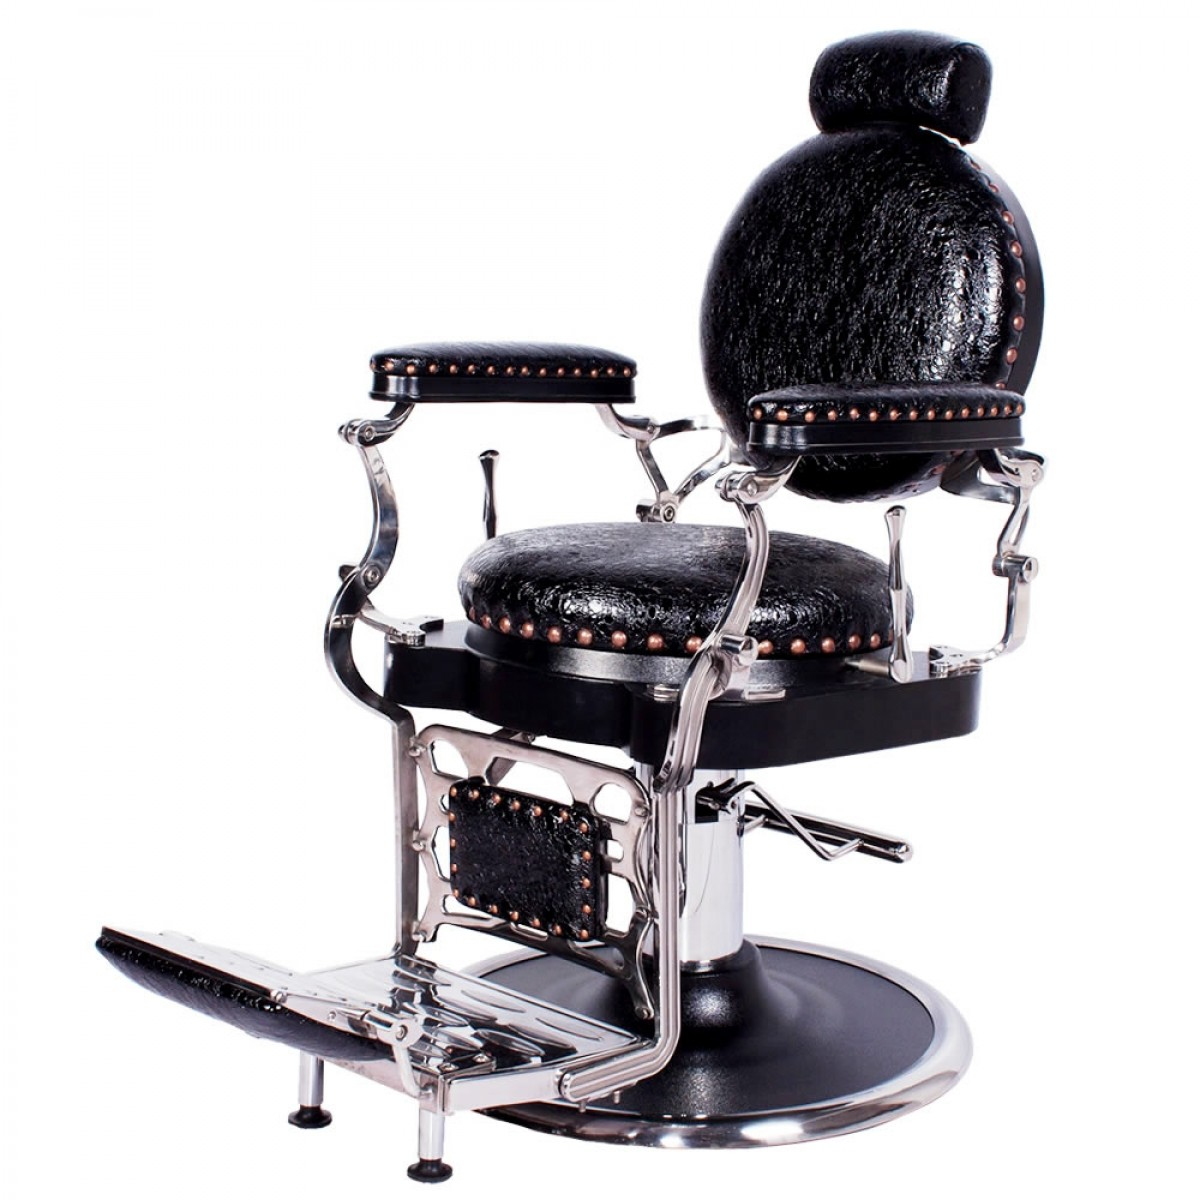 ZENO Antique Barbershop Chair Sale